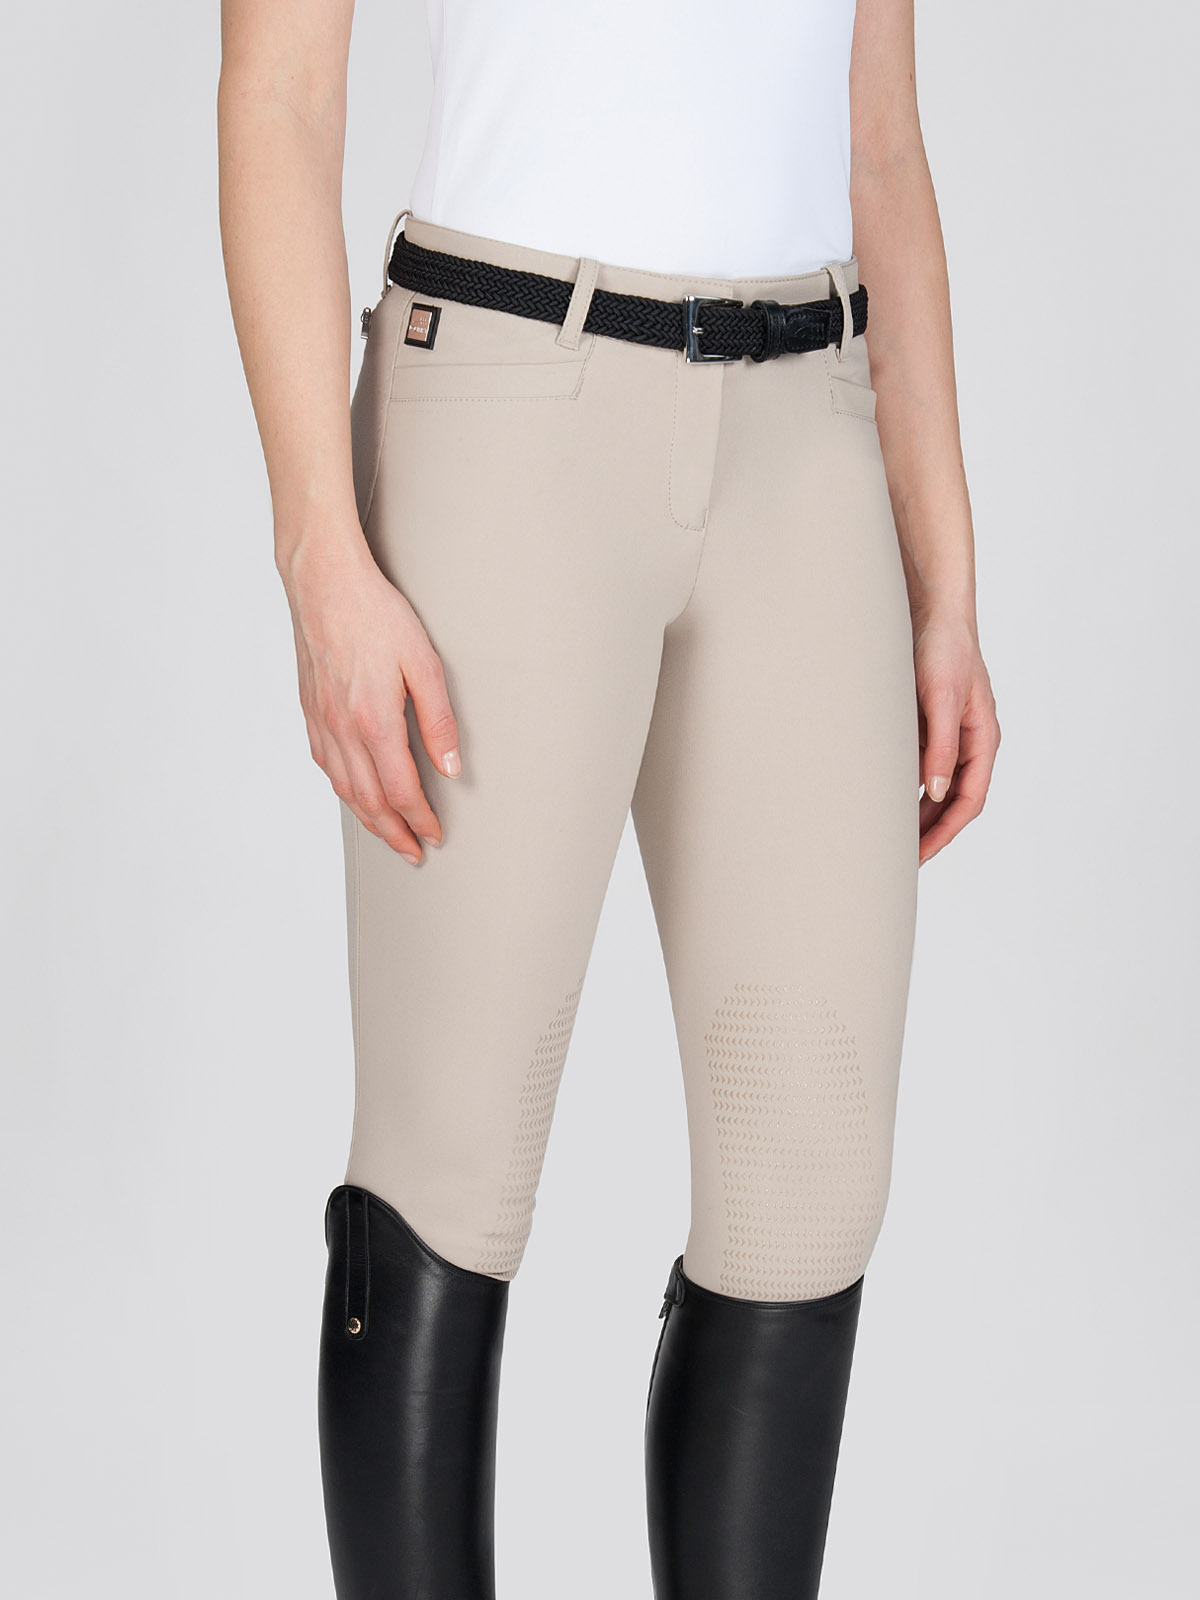 ASH Women's Riding Breeches with X-Grip Knee Patch 2